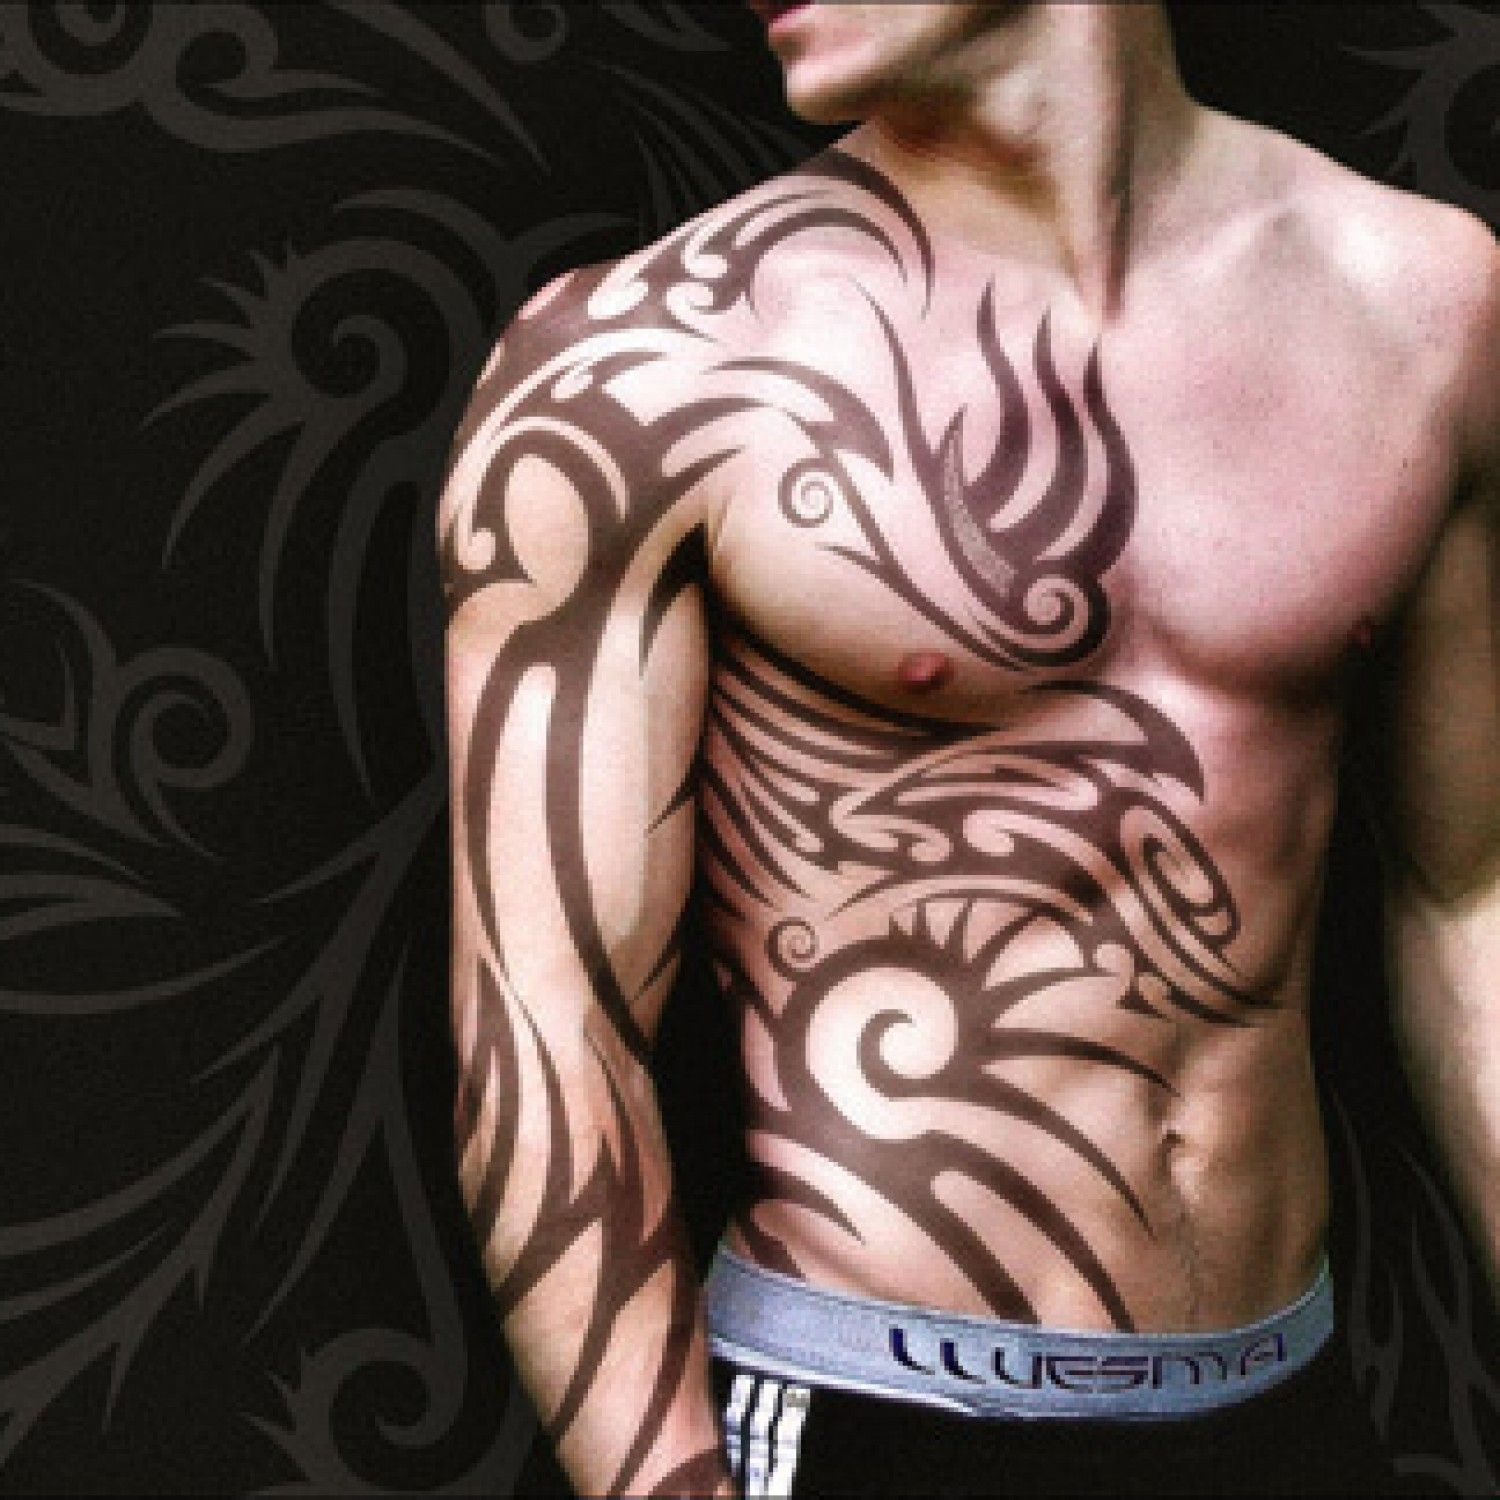 Awesome Tattoo for all Guys : Everything You Need to Know